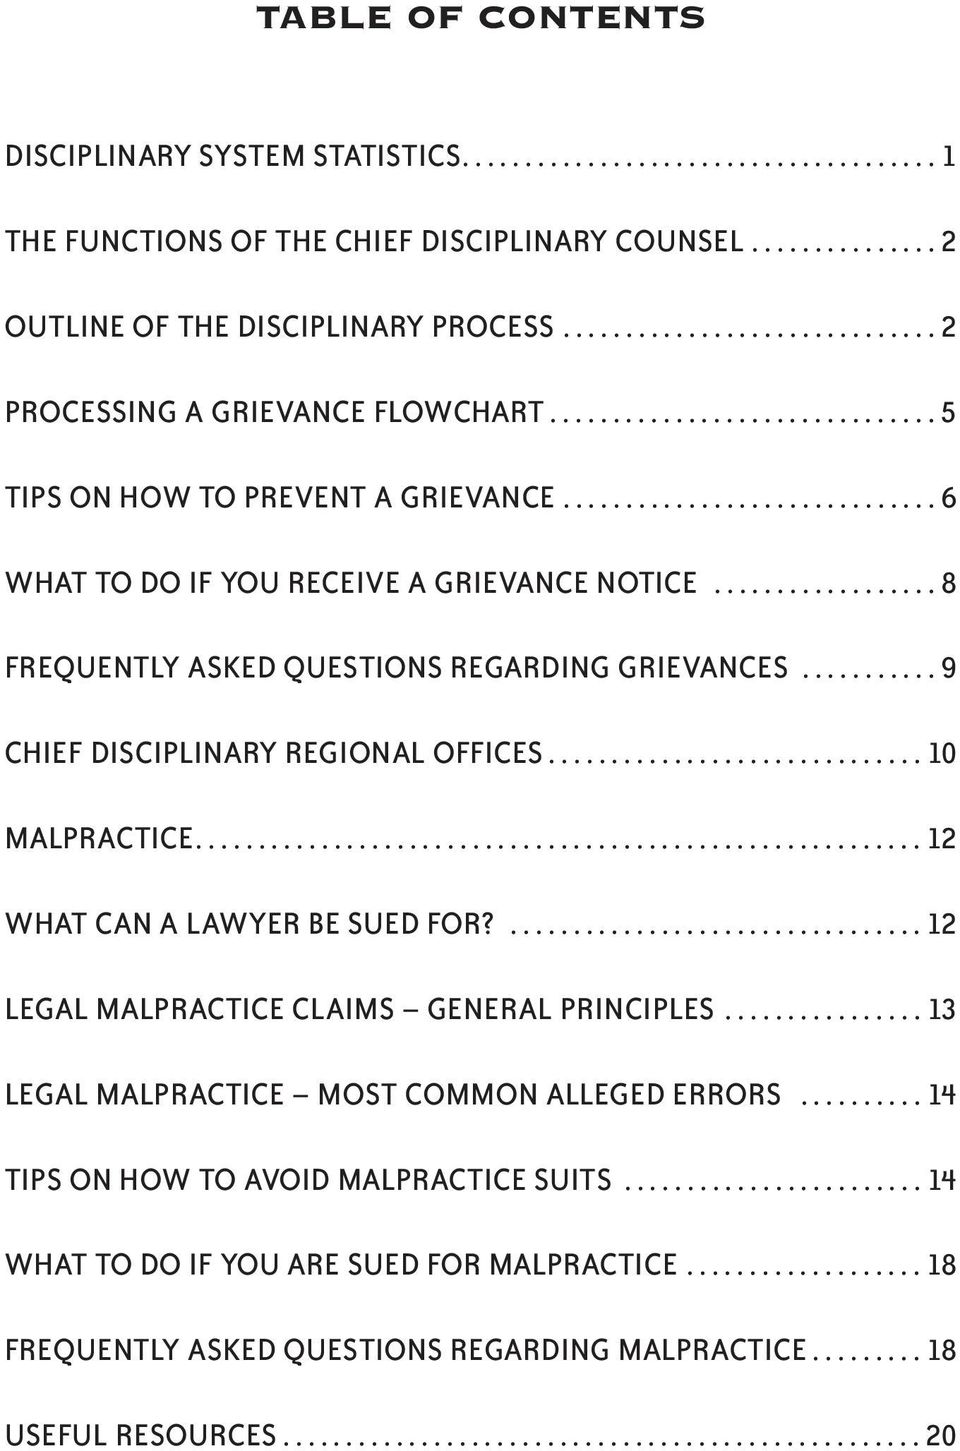 ................. 8 FREQUENTLY ASKED QUESTIONS REGARDING GRIEVANCES........... 9 CHIEF DISCIPLINARY REGIONAL OFFICES.............................. 10 MALPRACTICE.......................................................... 12 WHAT CAN A LAWYER BE SUED FOR?